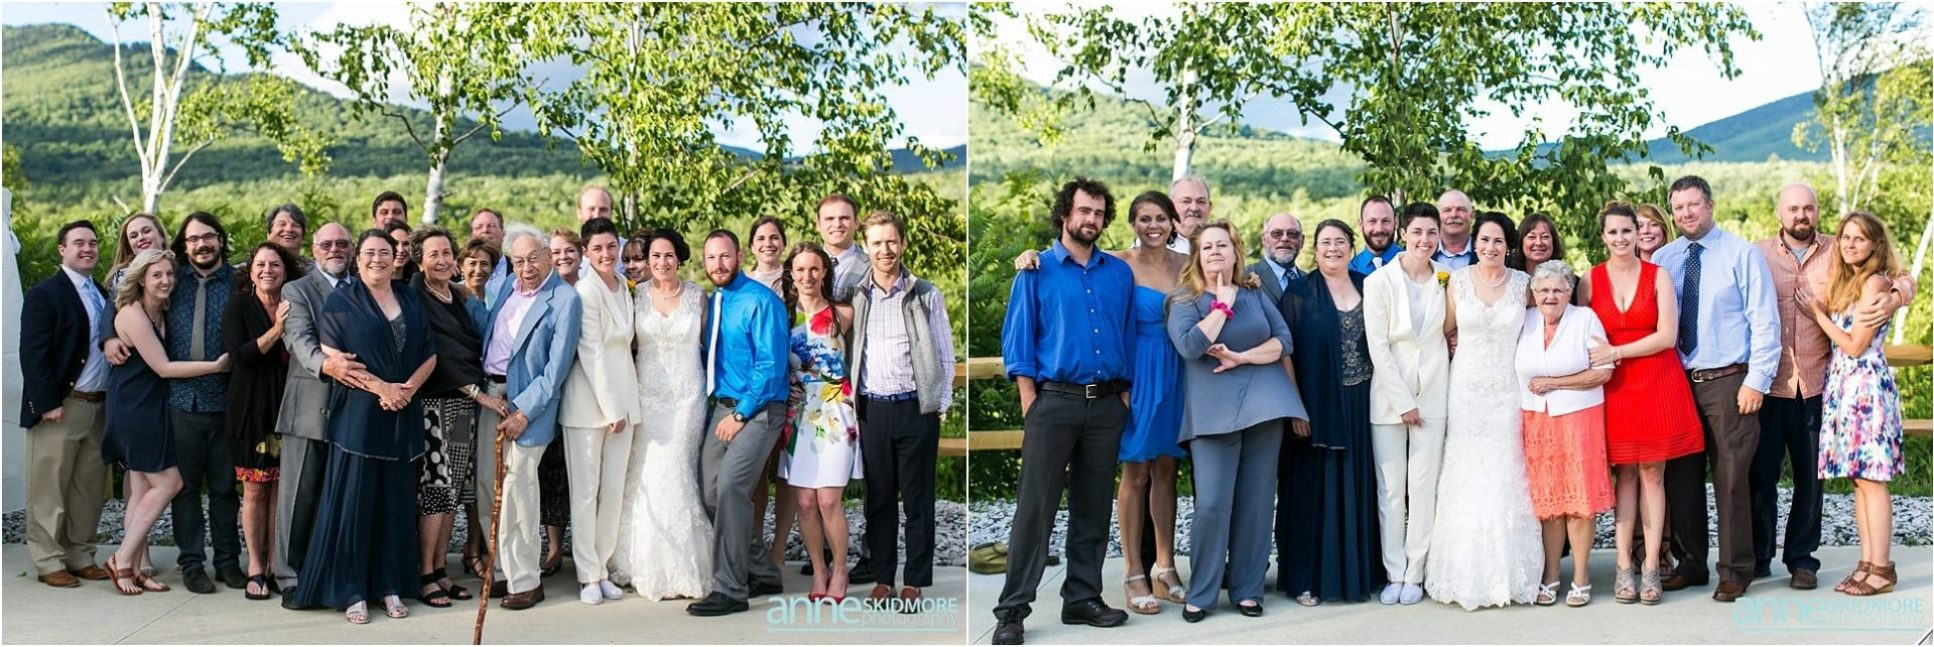 Eagle_Mountain_House_Wedding__090